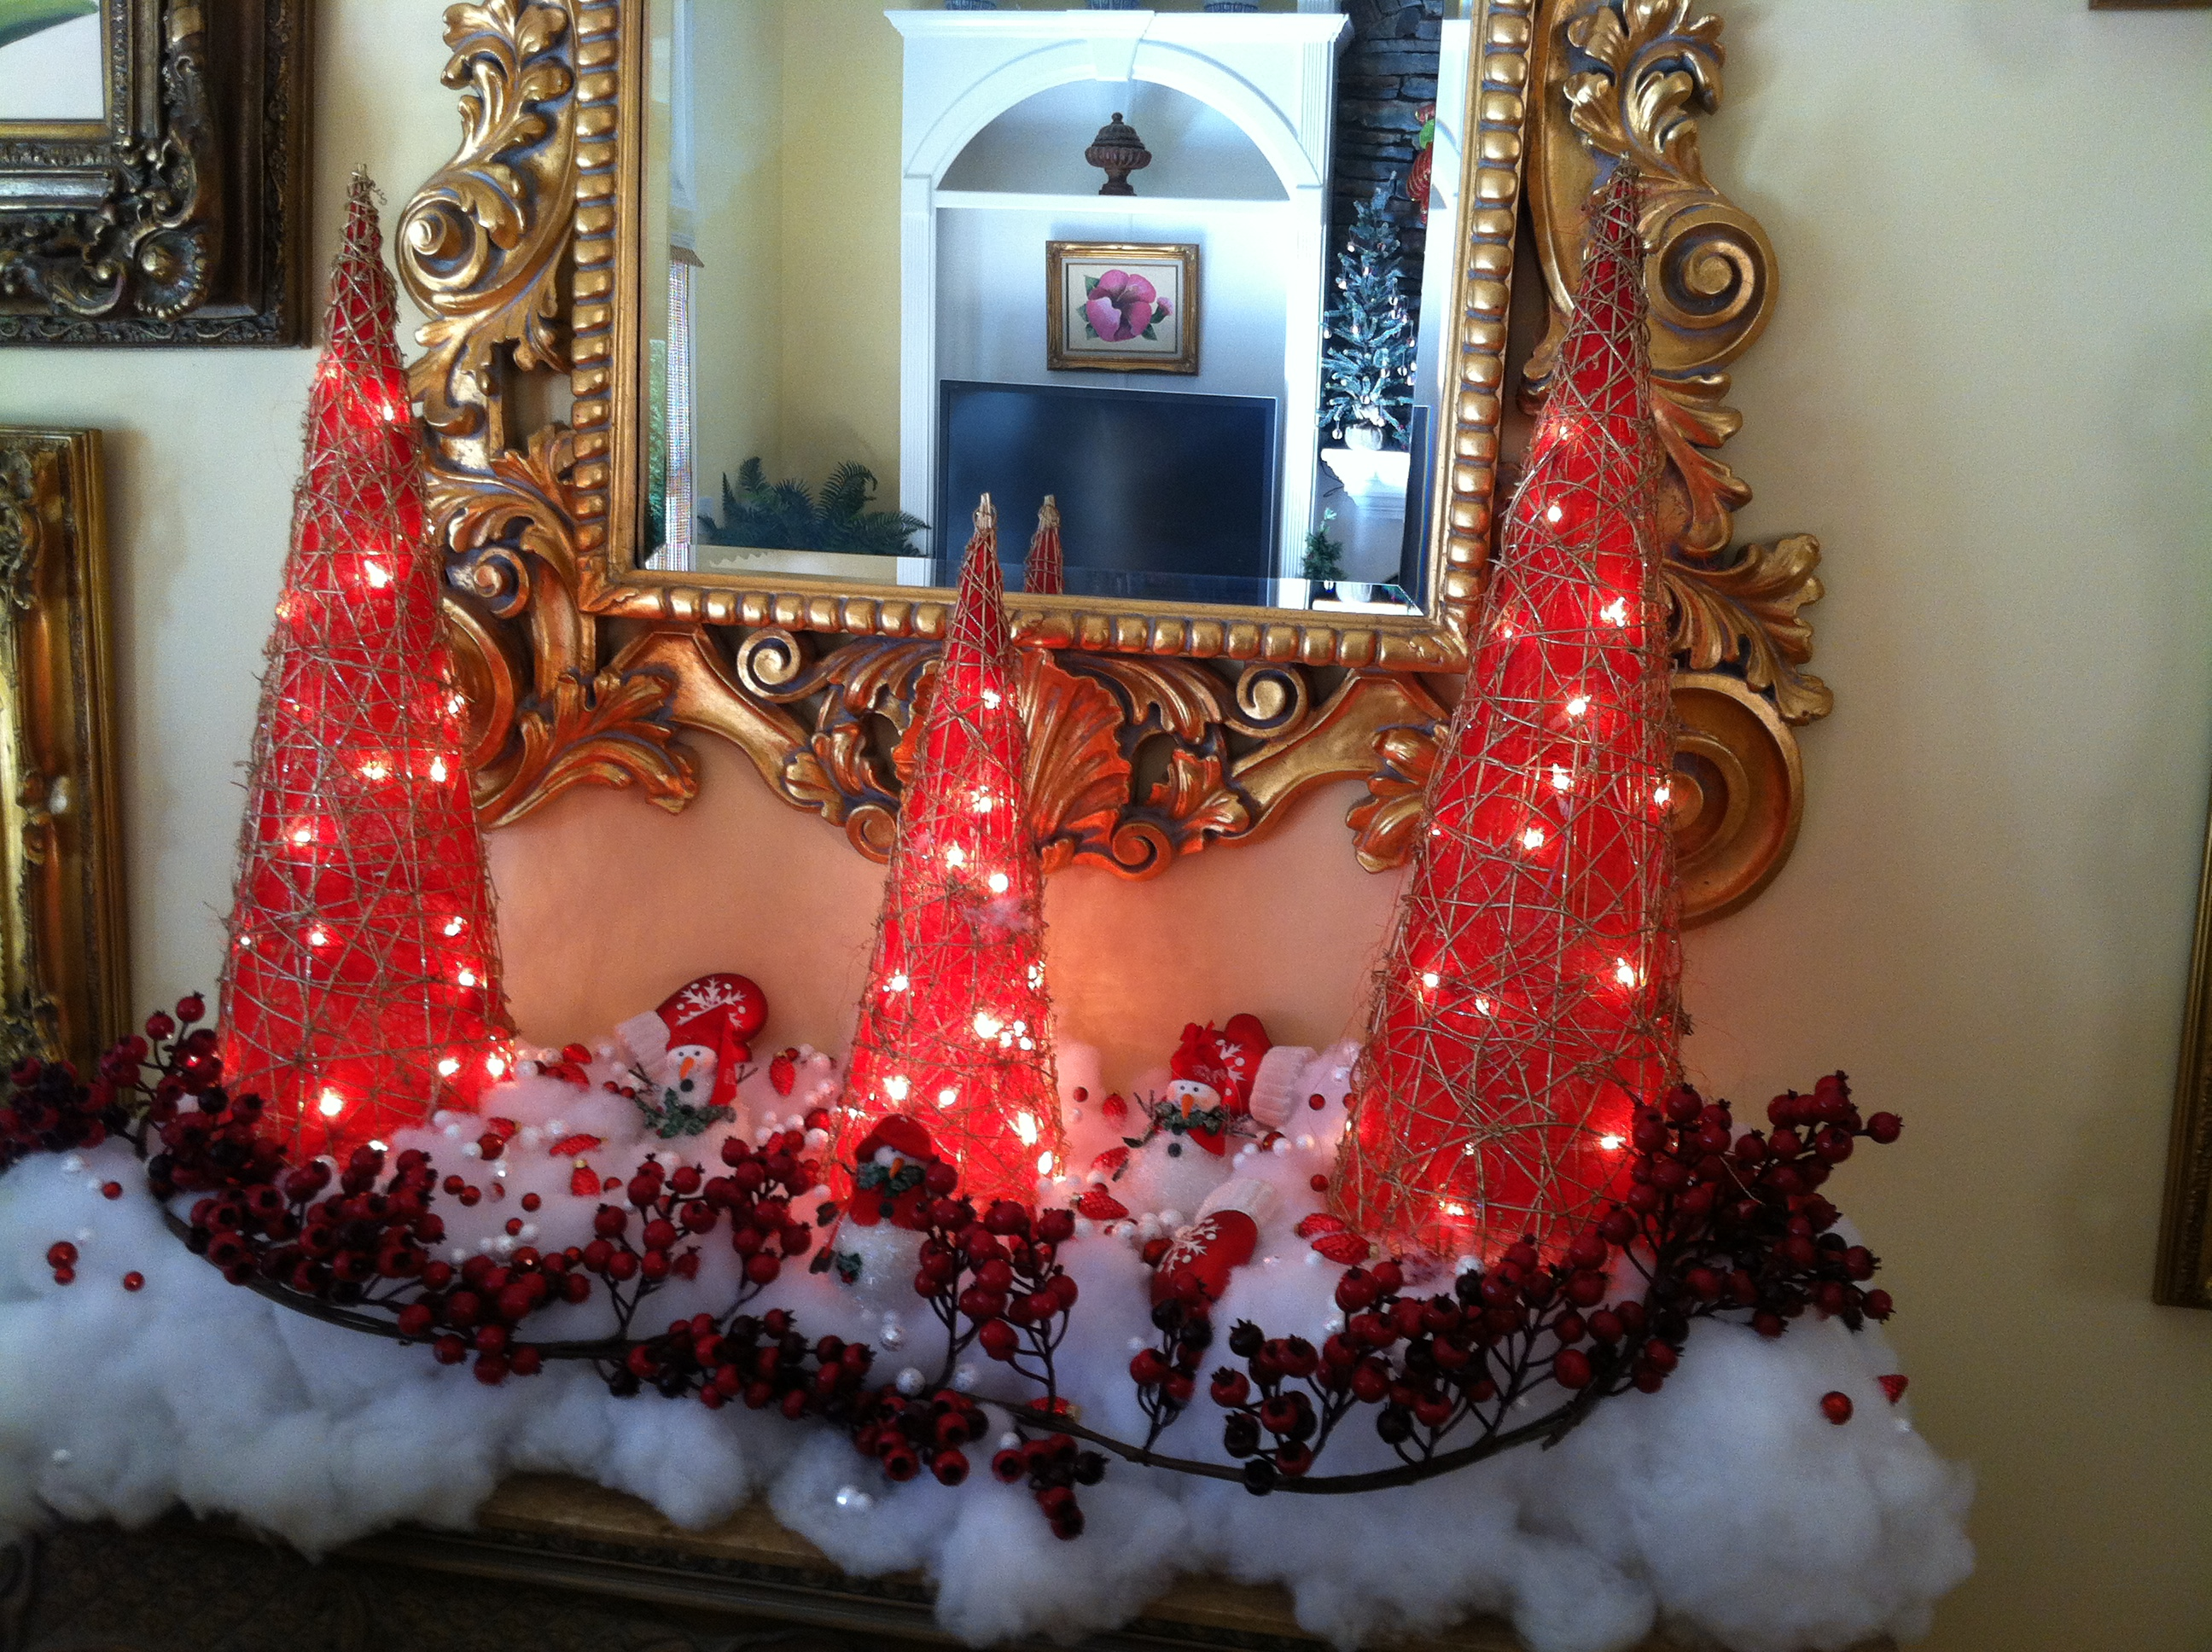 ... More Christmas Ideas To Decorate Your Home ...